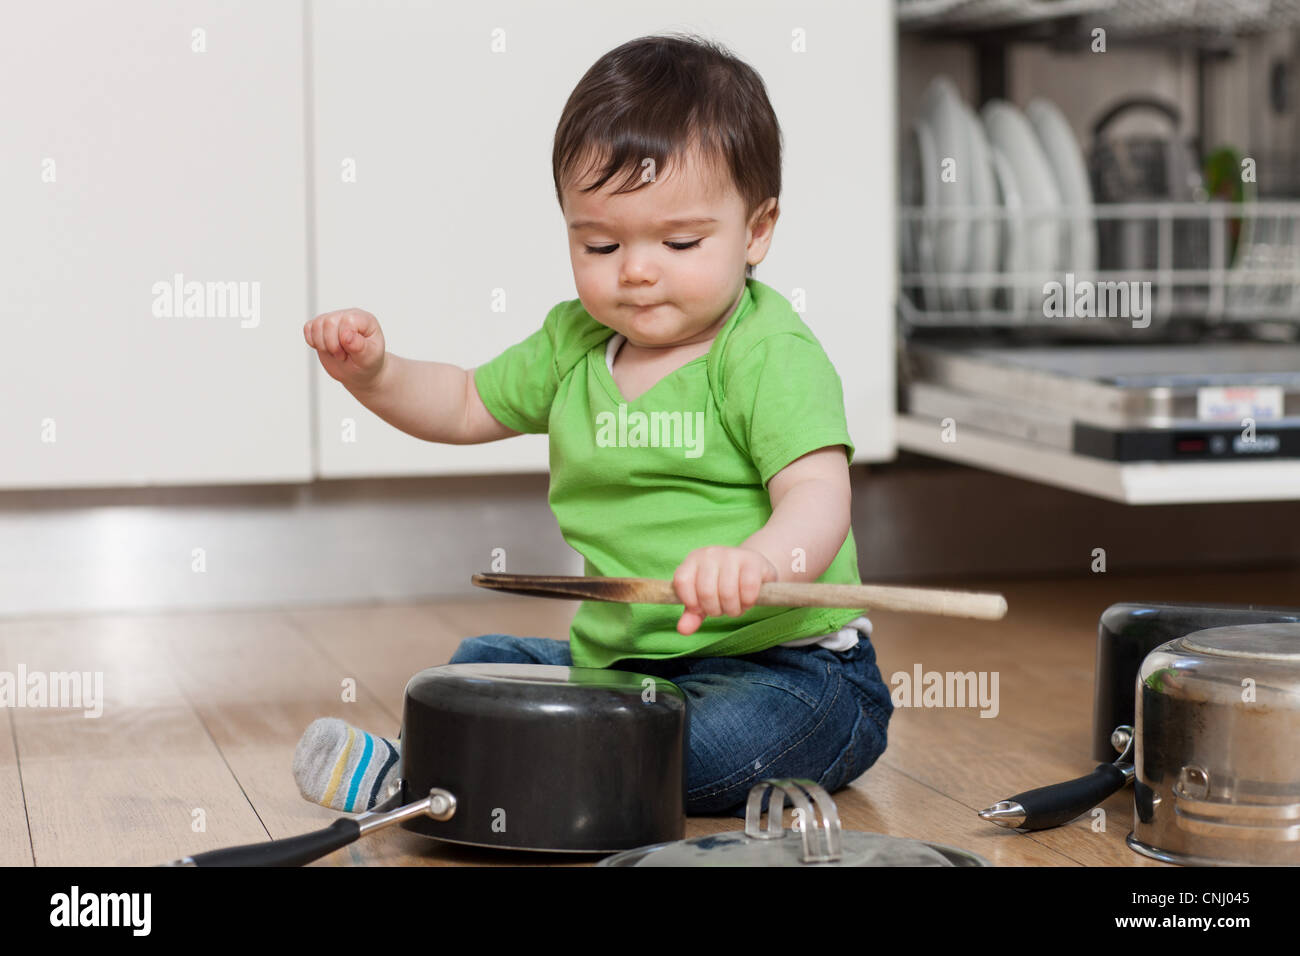 Baby playing with pots and pans - Stock Image